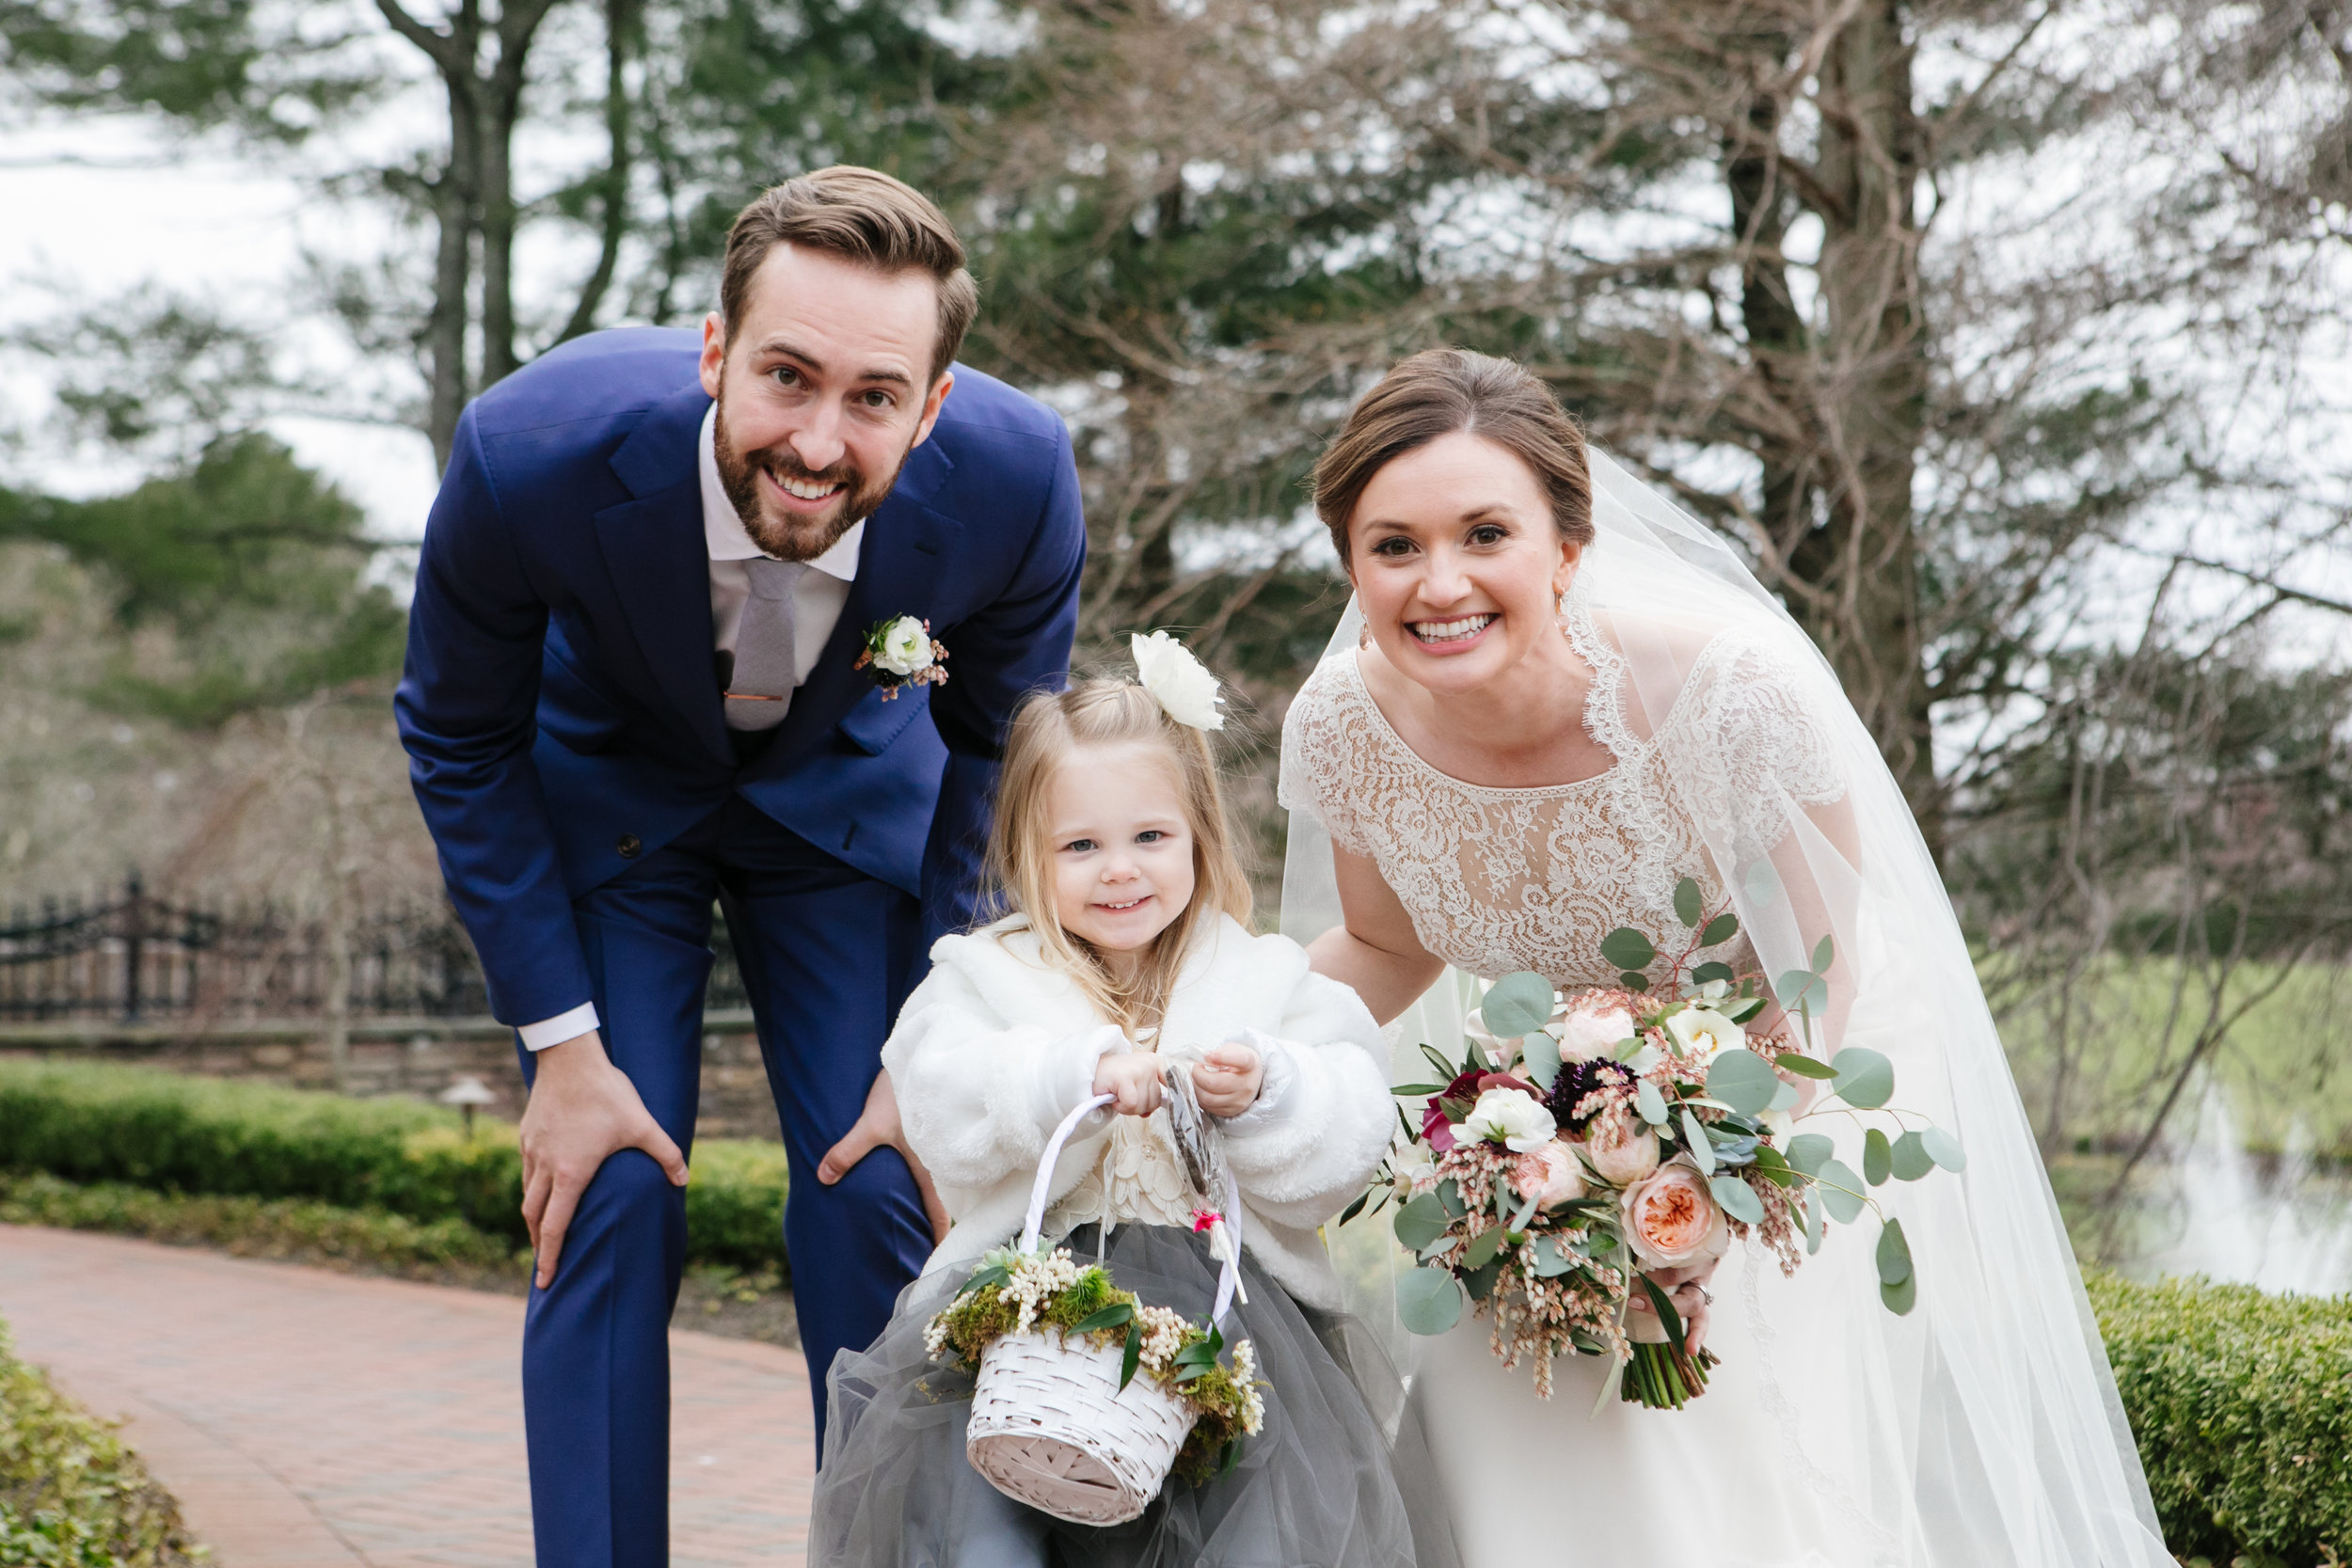 KatieTom_WeddingPreview_JB_2203.jpg